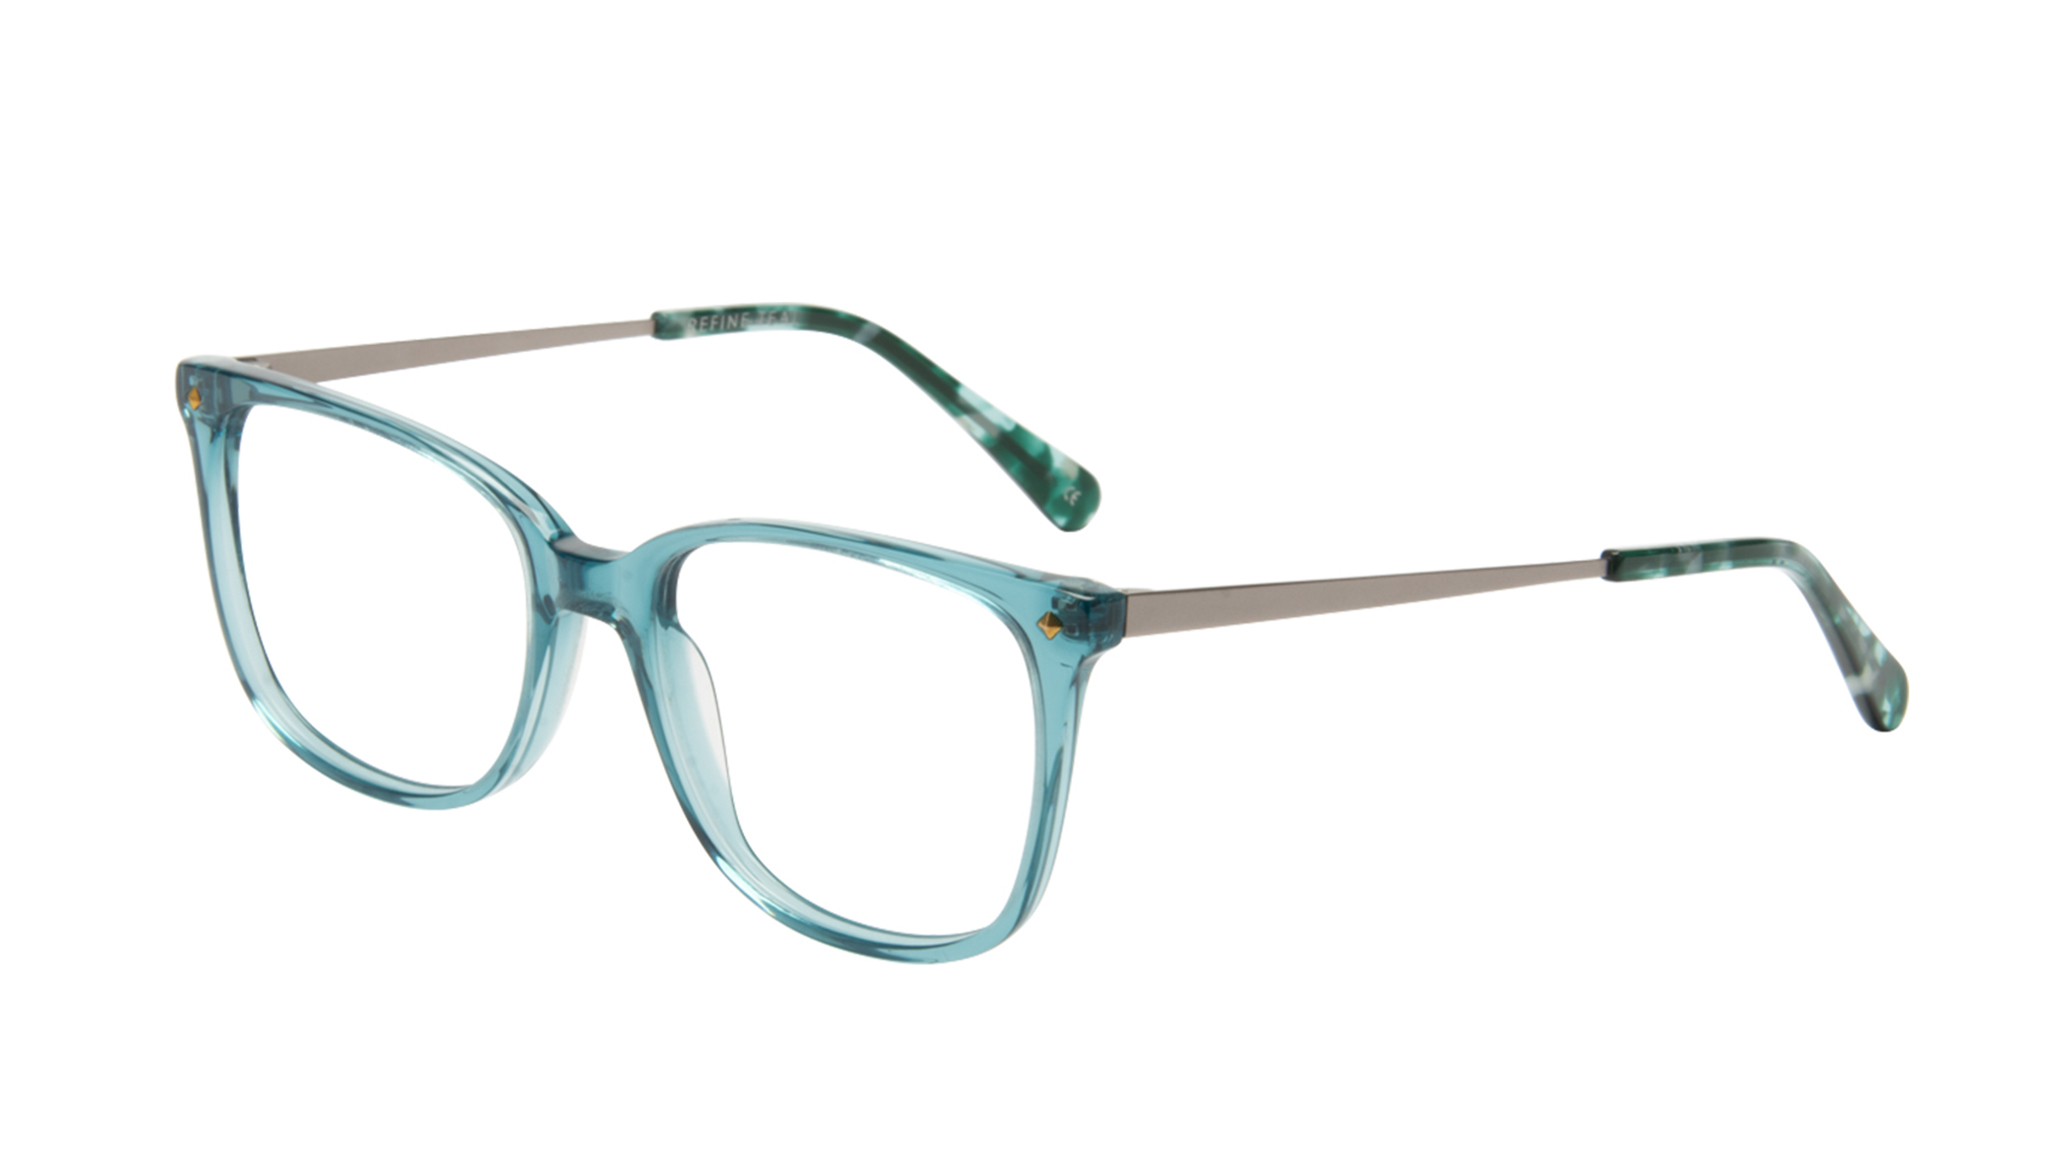 870bf3f6f8a0 Affordable fashion glasses rectangle square eyeglasses women refine teal  tilt jpg 1600x707 Mlg glasses tilted